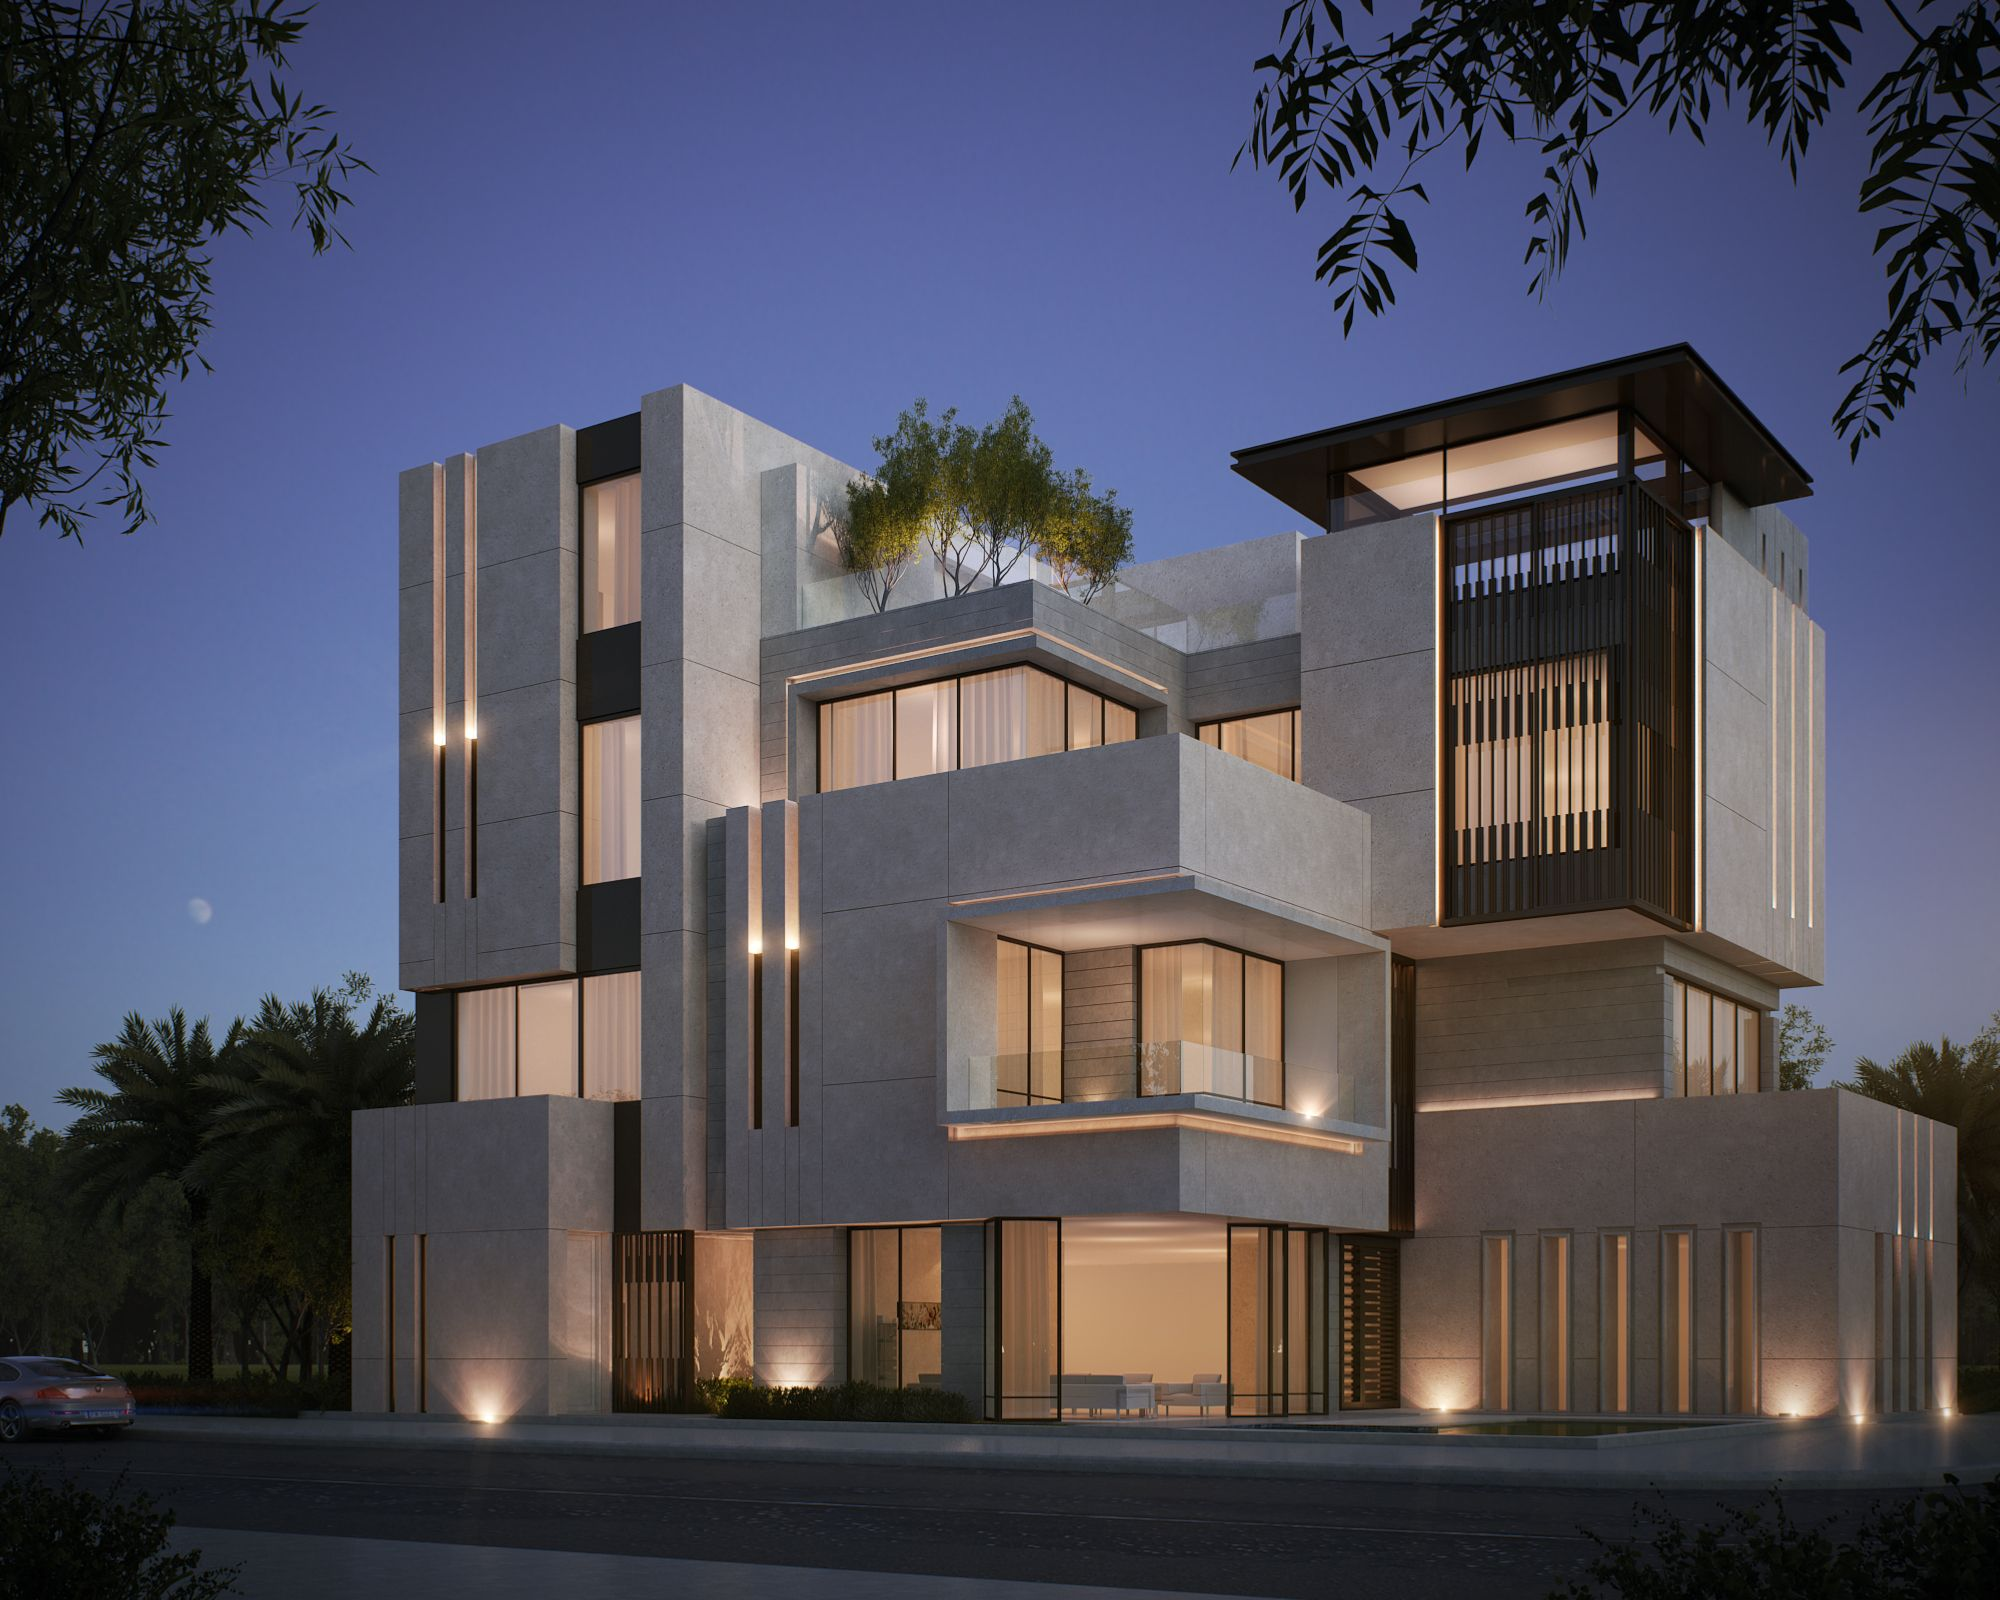 Private villa 500 m kuwait sarah sadeq architects sarah for Modern house villa